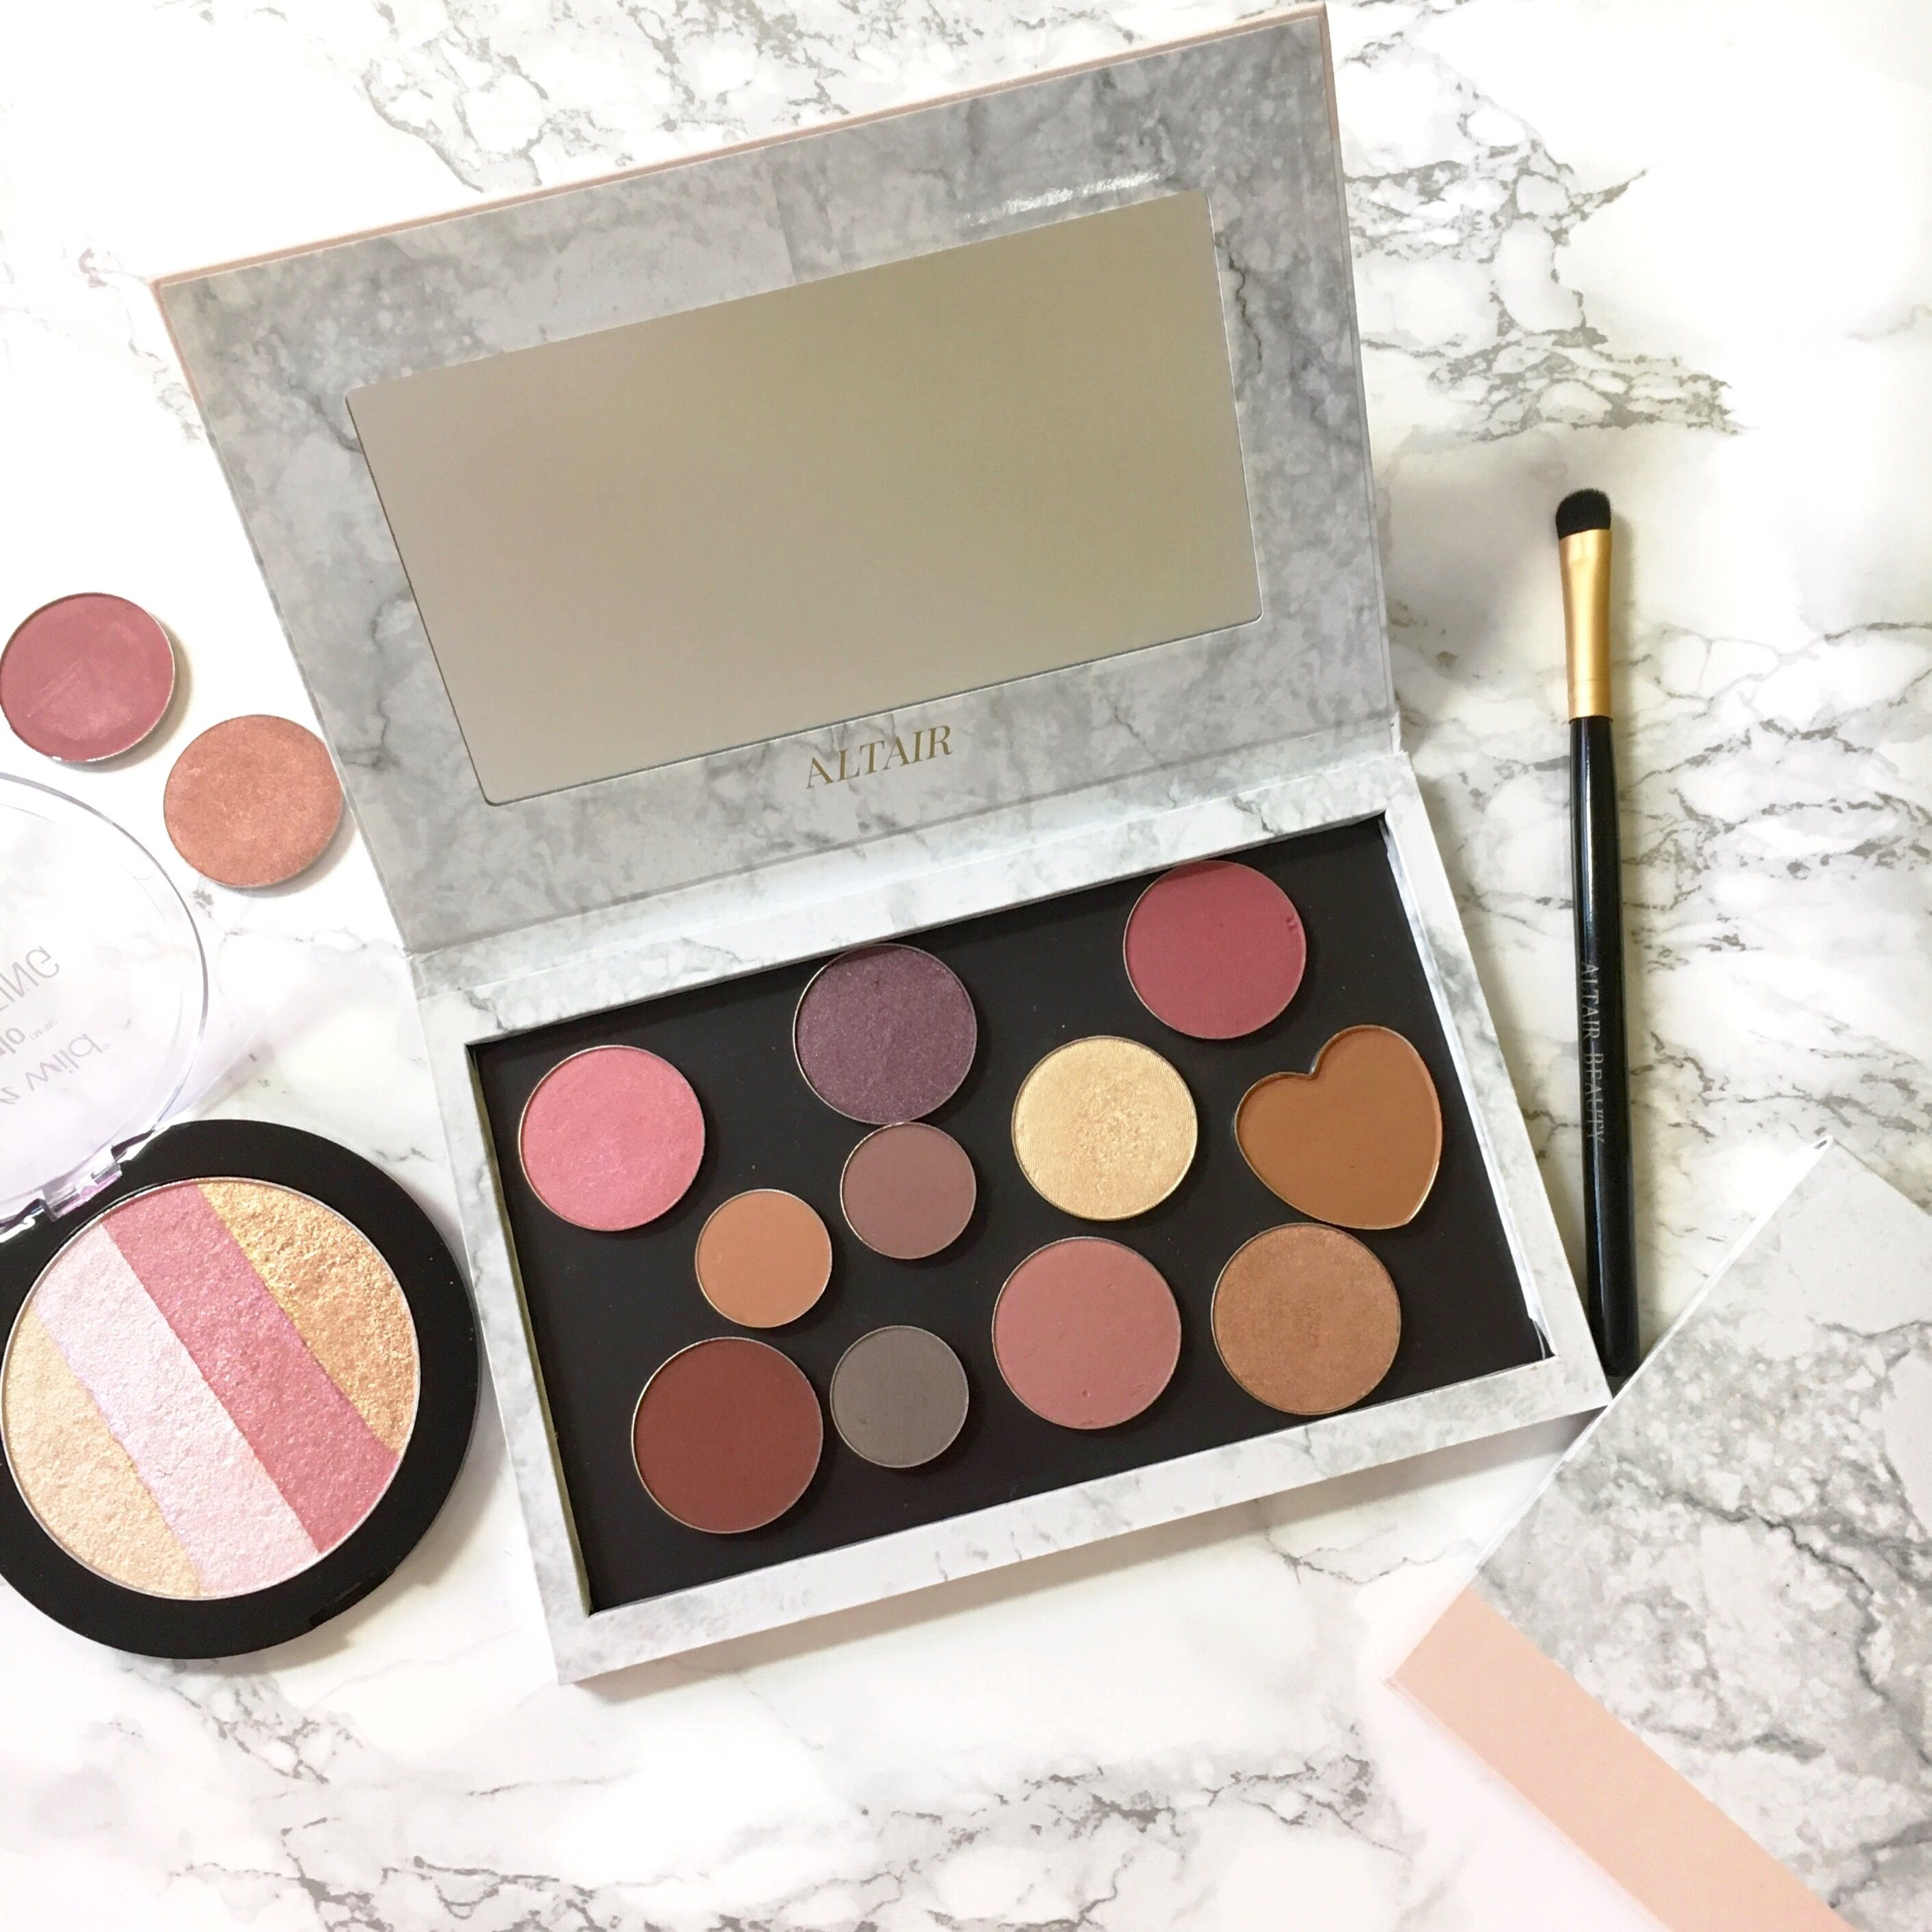 Empty makeup palette from Altair Beauty. Custom